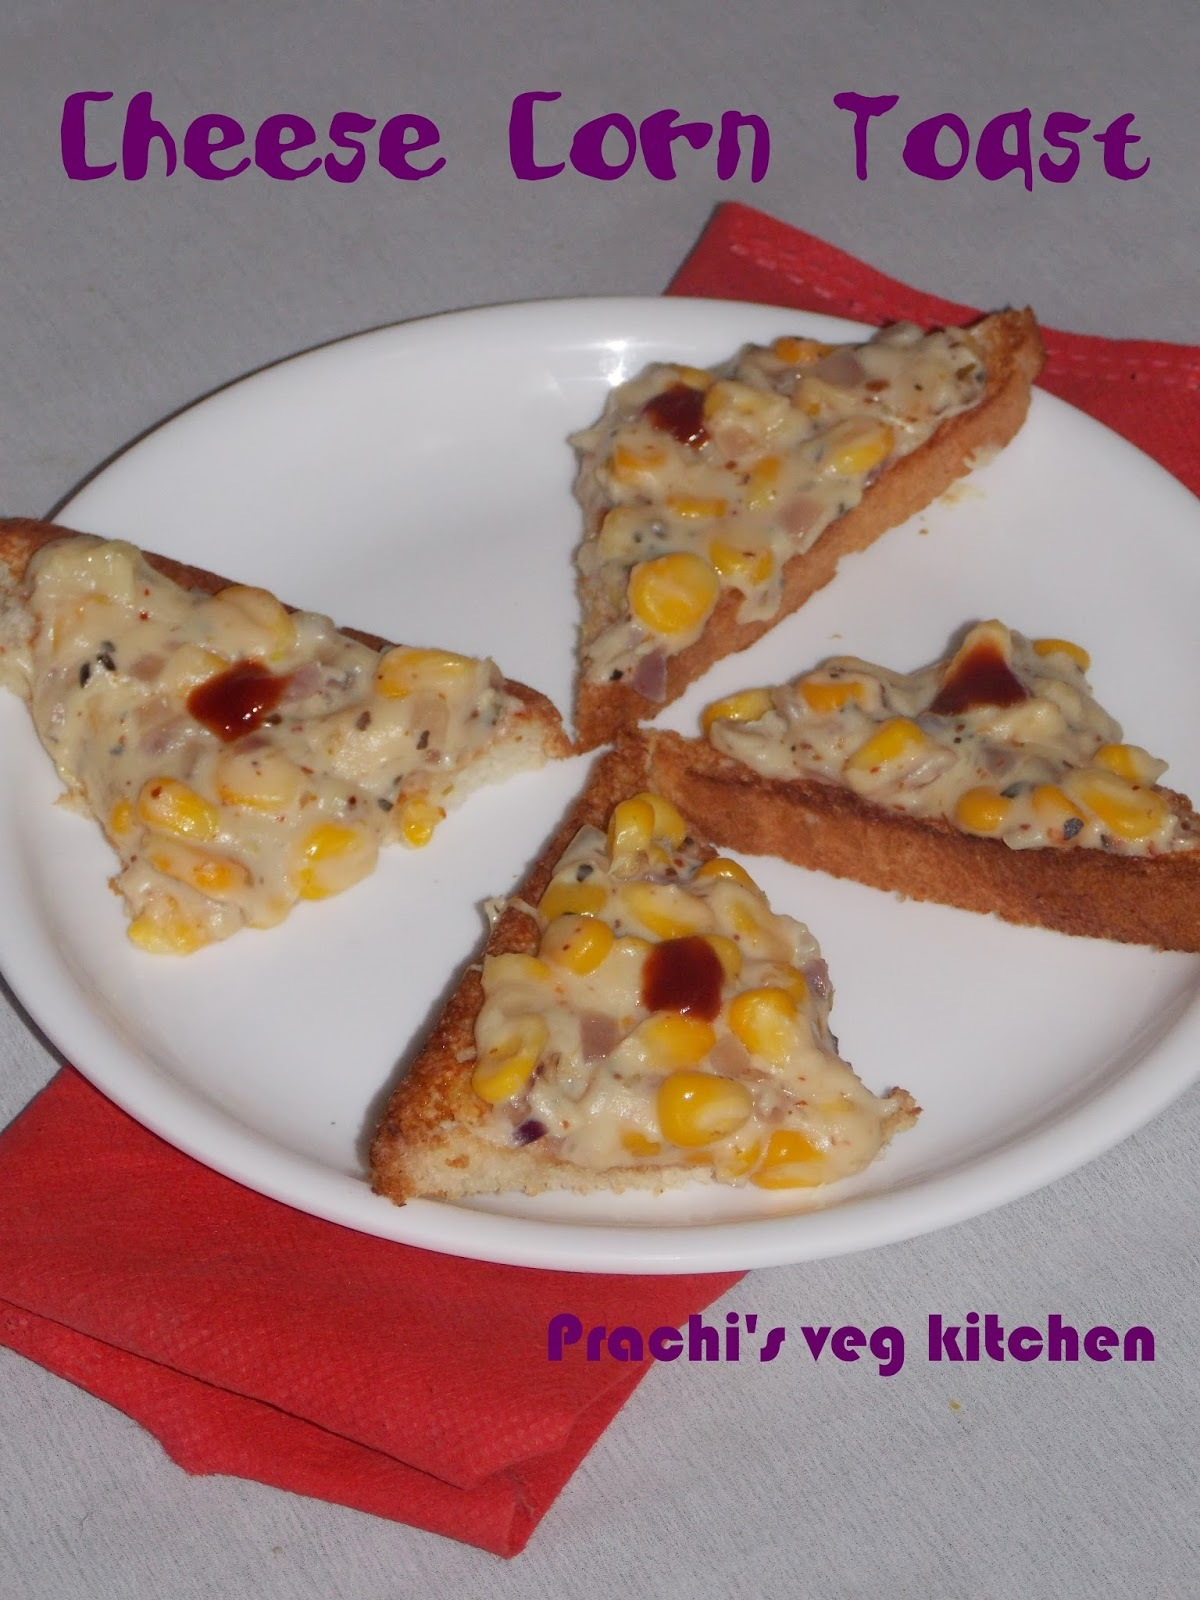 Cheese Corn Toast